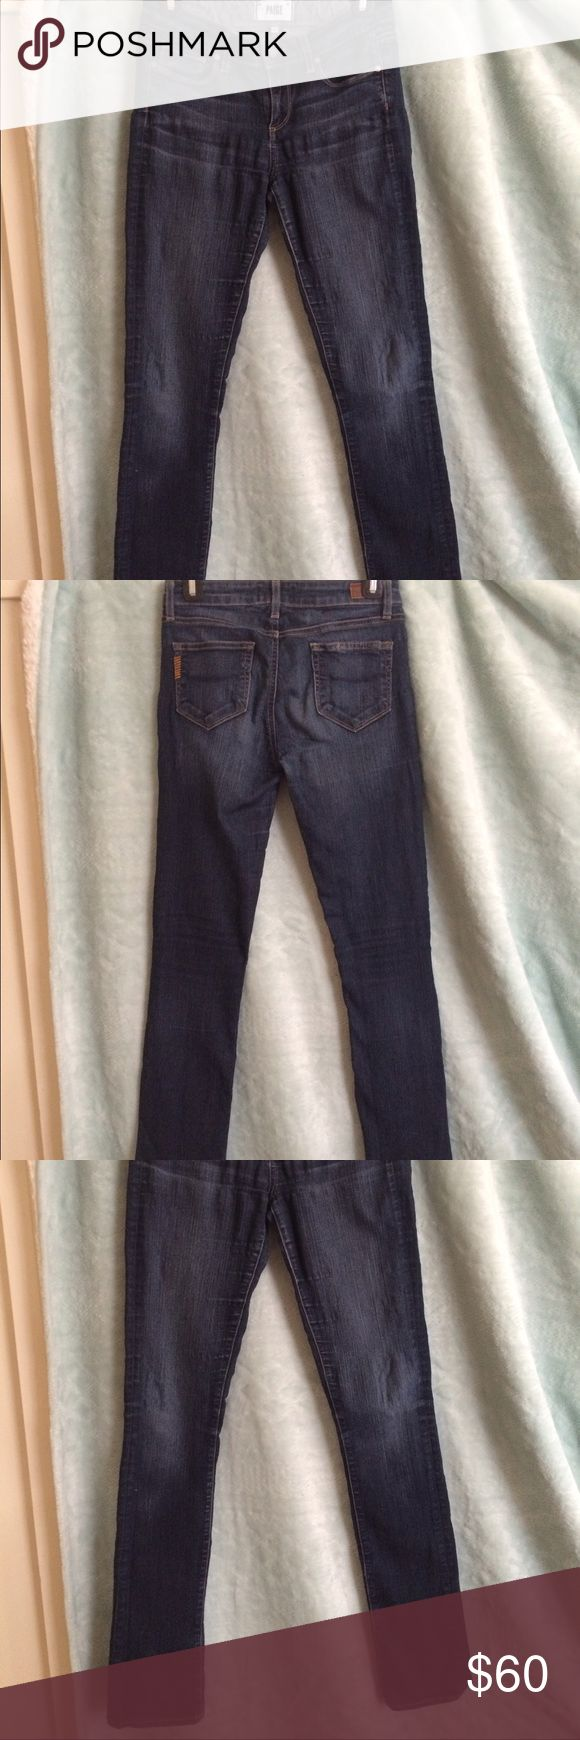 SALE❗️❗️❗️❗Paige Jeans SALE❗️❗️❗️These Paige jeans are stretchy and comfortable and have some wear in the knee and upper parts of the Jean where the material is a bit thinner and looks wrinkled. They are not quite skinny jeans- just a bit looser.                                           ❗️Ships FAST📦❗️.  Bundle to save - 20% off when you bundle 2 items!! Paige Jeans Jeans Straight Leg